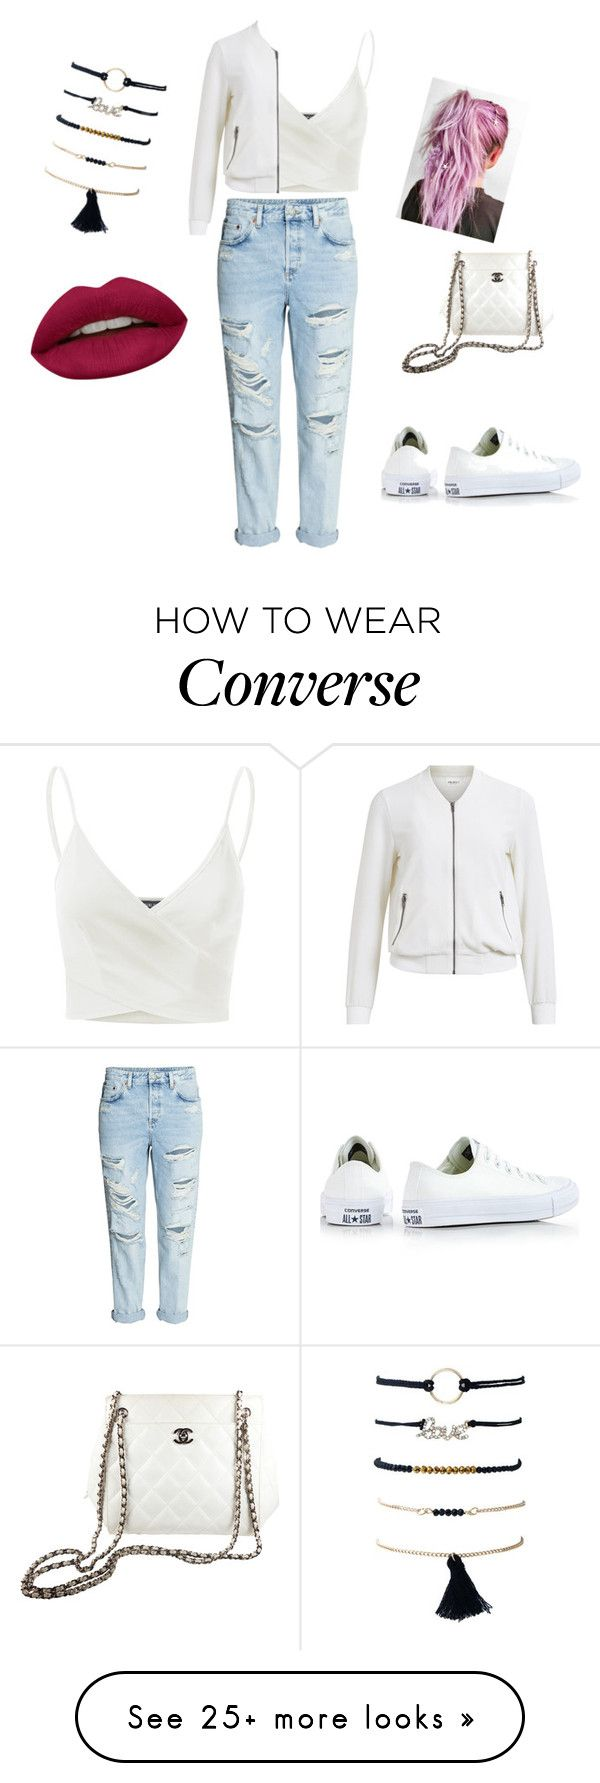 """Untitled #358"" by abantescu23 on Polyvore featuring H&M, Doublju, Converse, Object Collectors Item, Chanel and Huda Beauty"